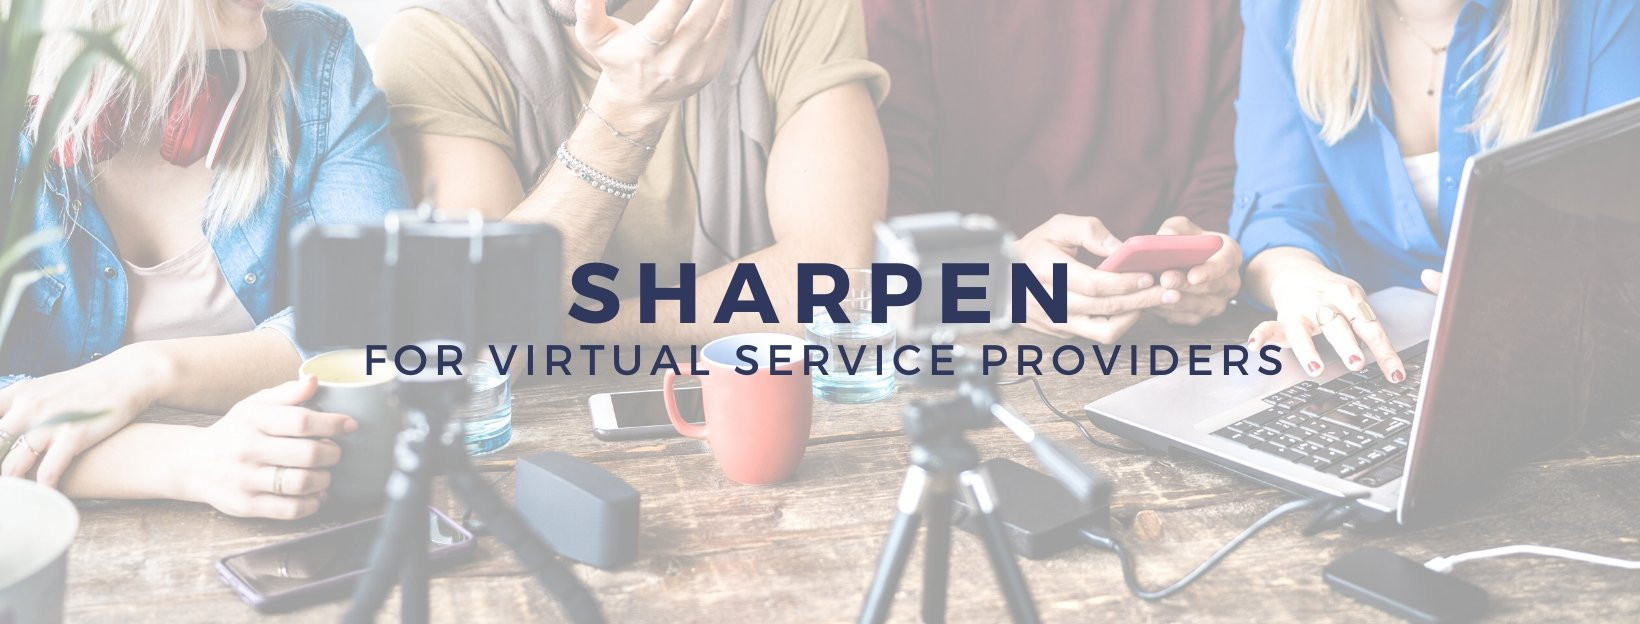 The VCH Sharpen for Virtual Service Providers